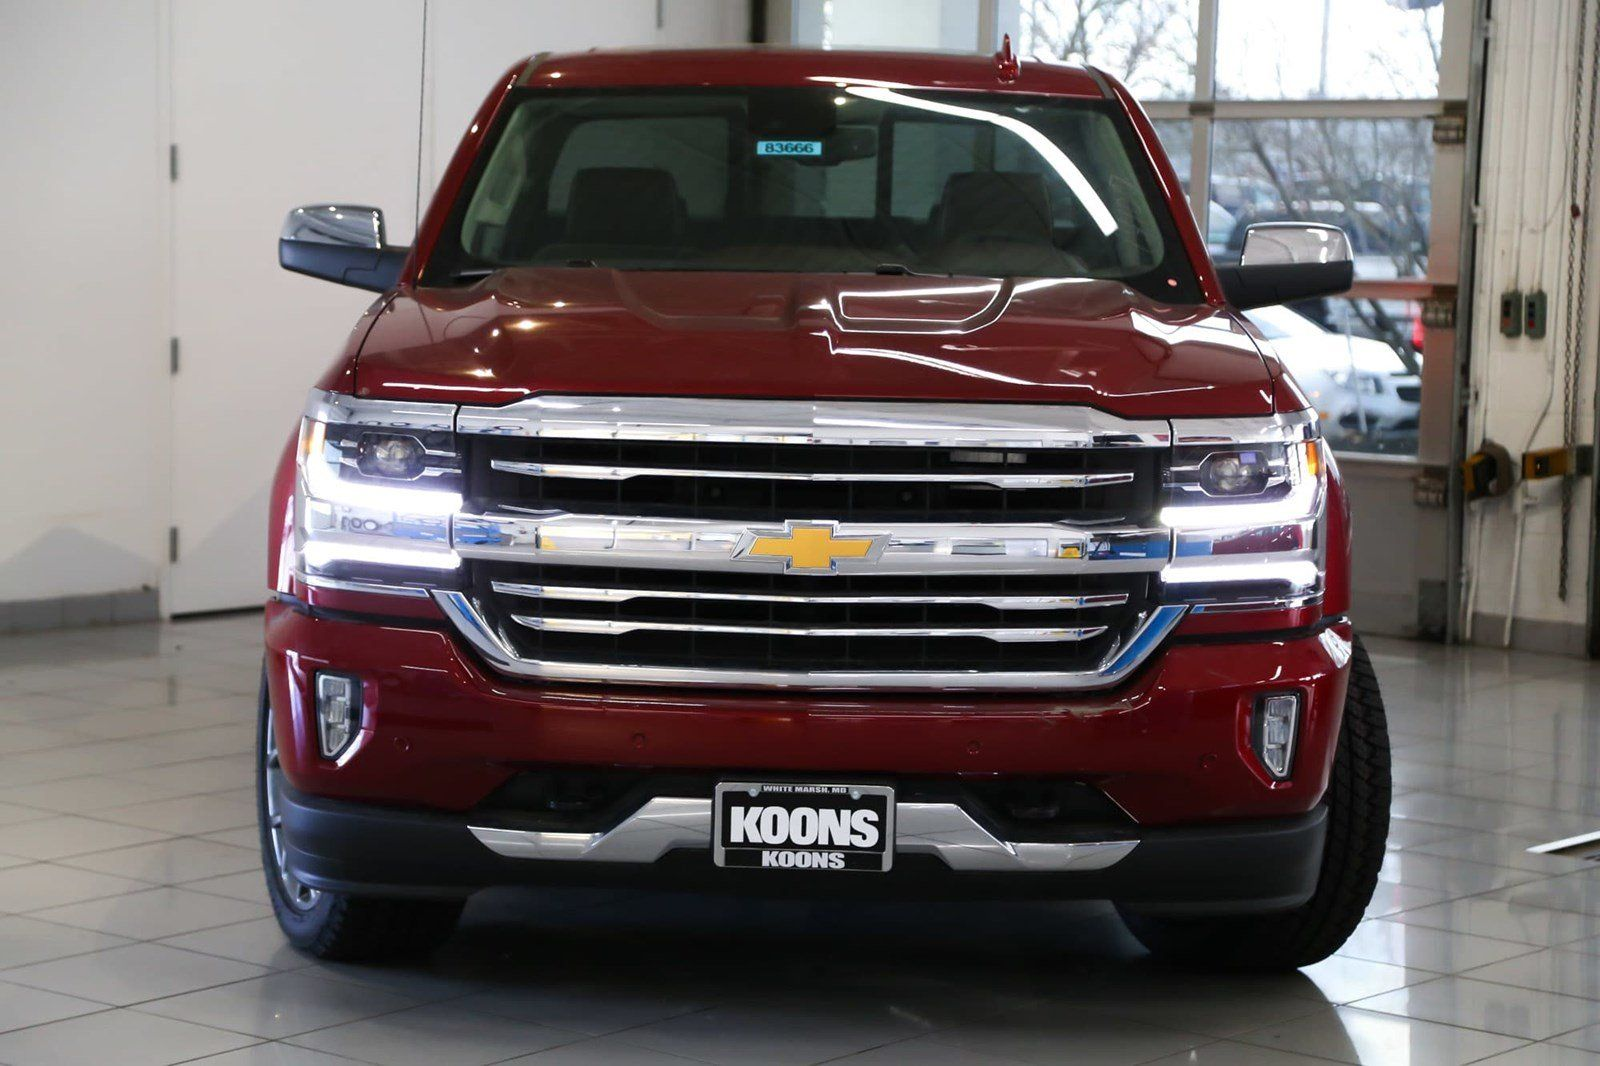 New 2018 Chevrolet Silverado 1500 4x4 Crew Cab High Country For Sale In White  Marsh, MD 21162: Truck Details   476889096   Autotrader